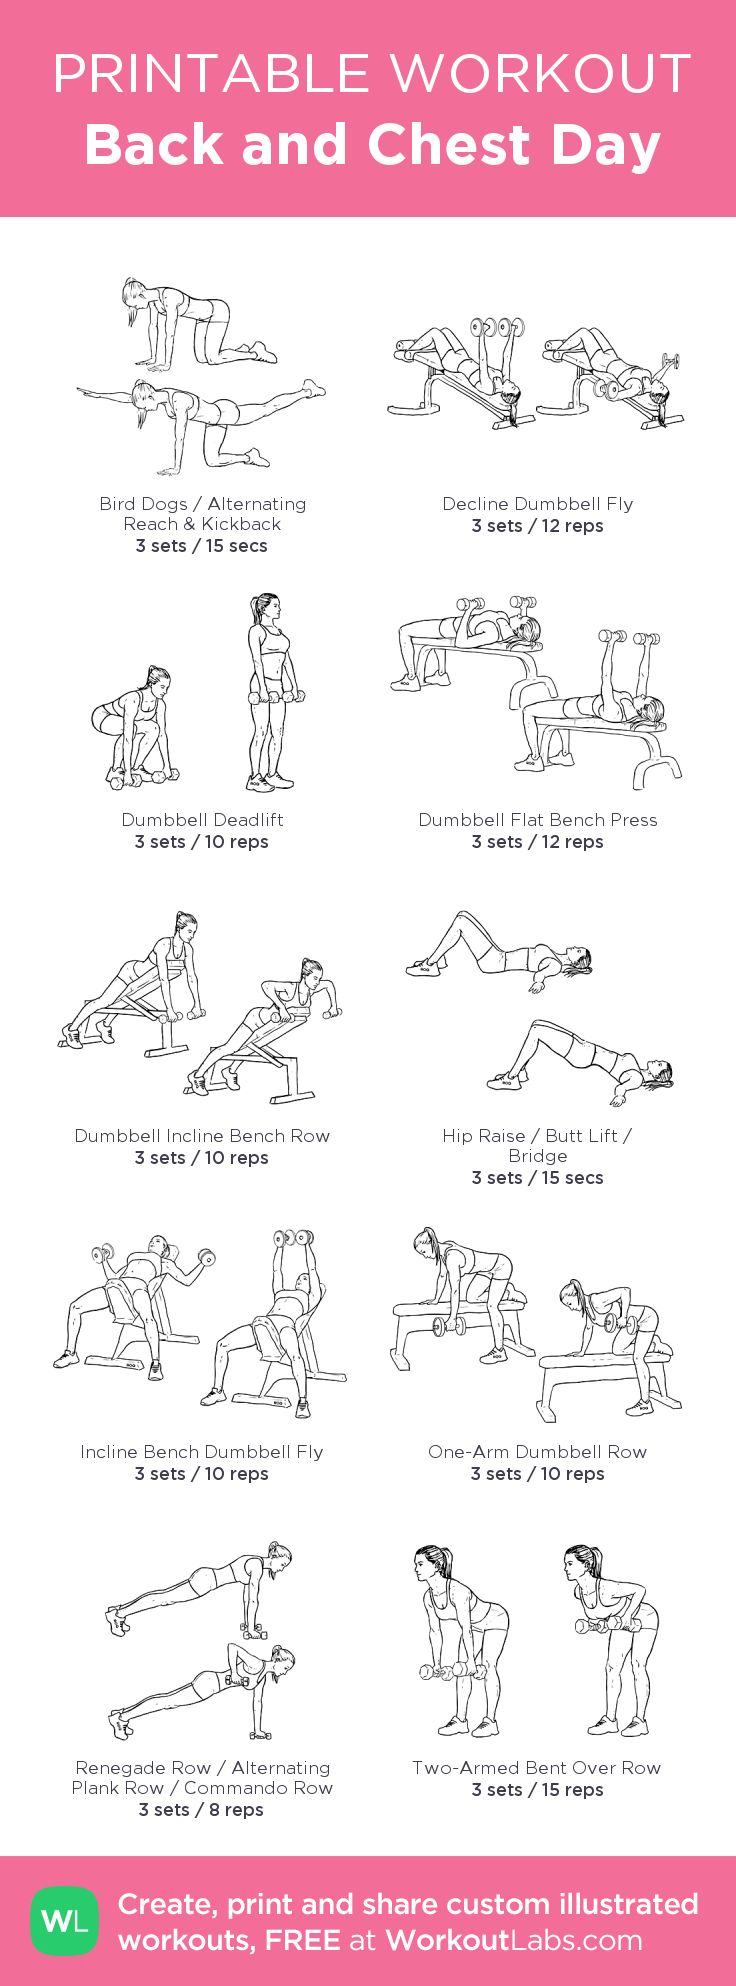 Back and Chest Day:my visual workout created at WorkoutLabs.com • Click through to customize and download as a FREE PDF! #customworkout